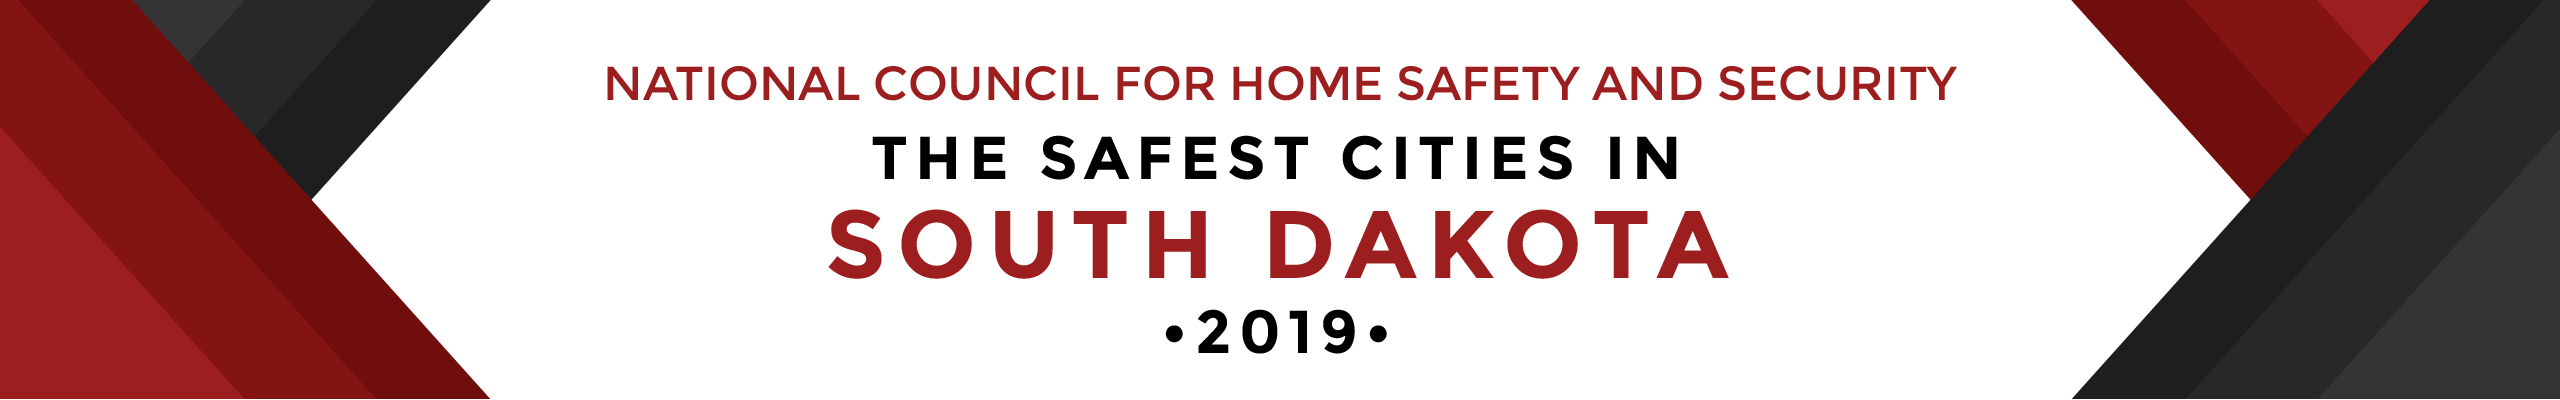 Safest Cities South Dakota - header